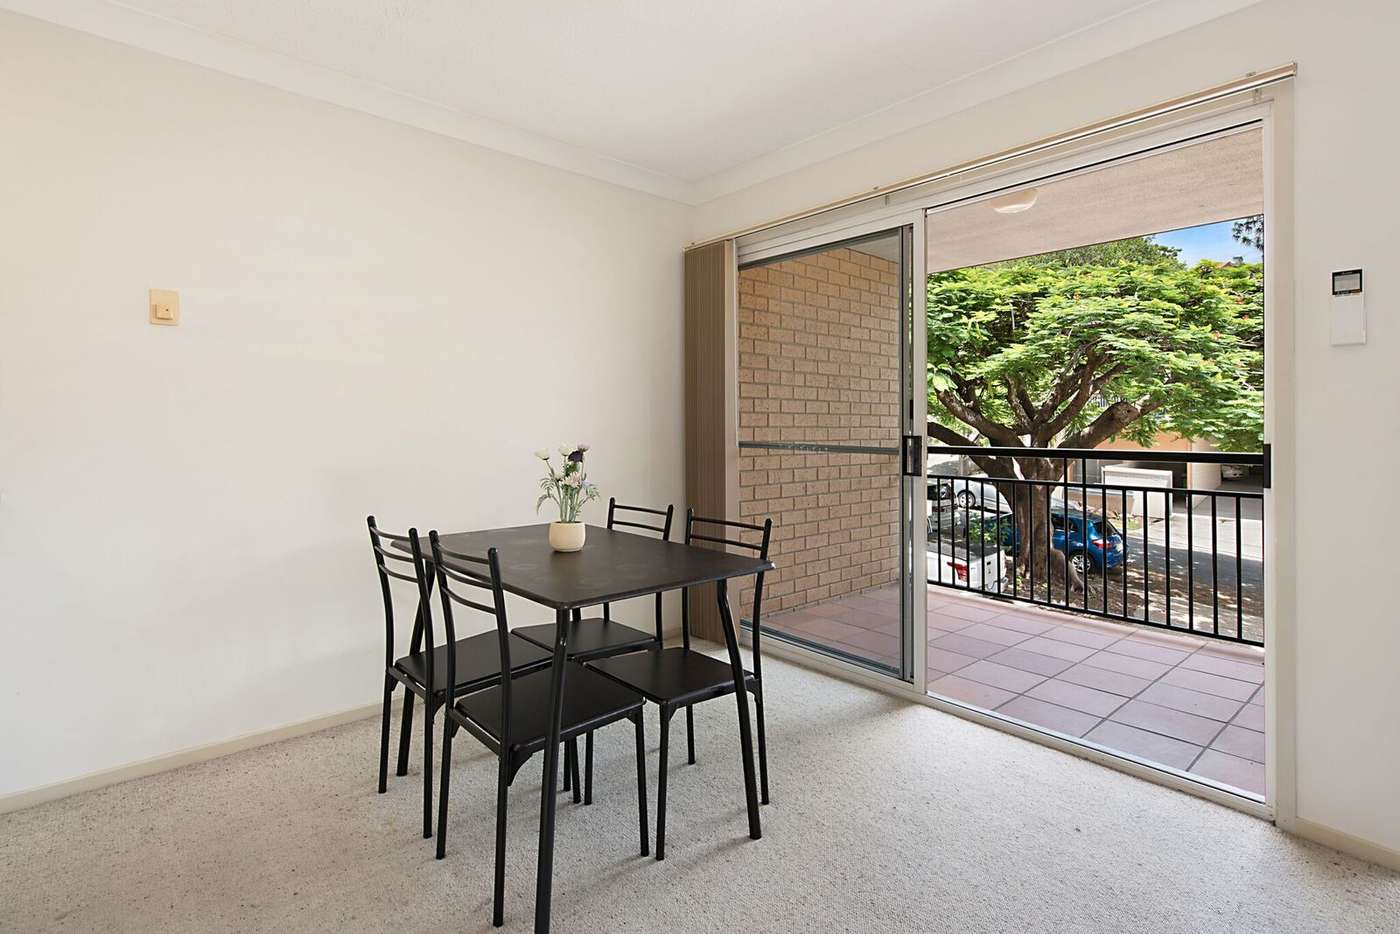 Sixth view of Homely unit listing, 1/15 Franklin Street, Kelvin Grove QLD 4059